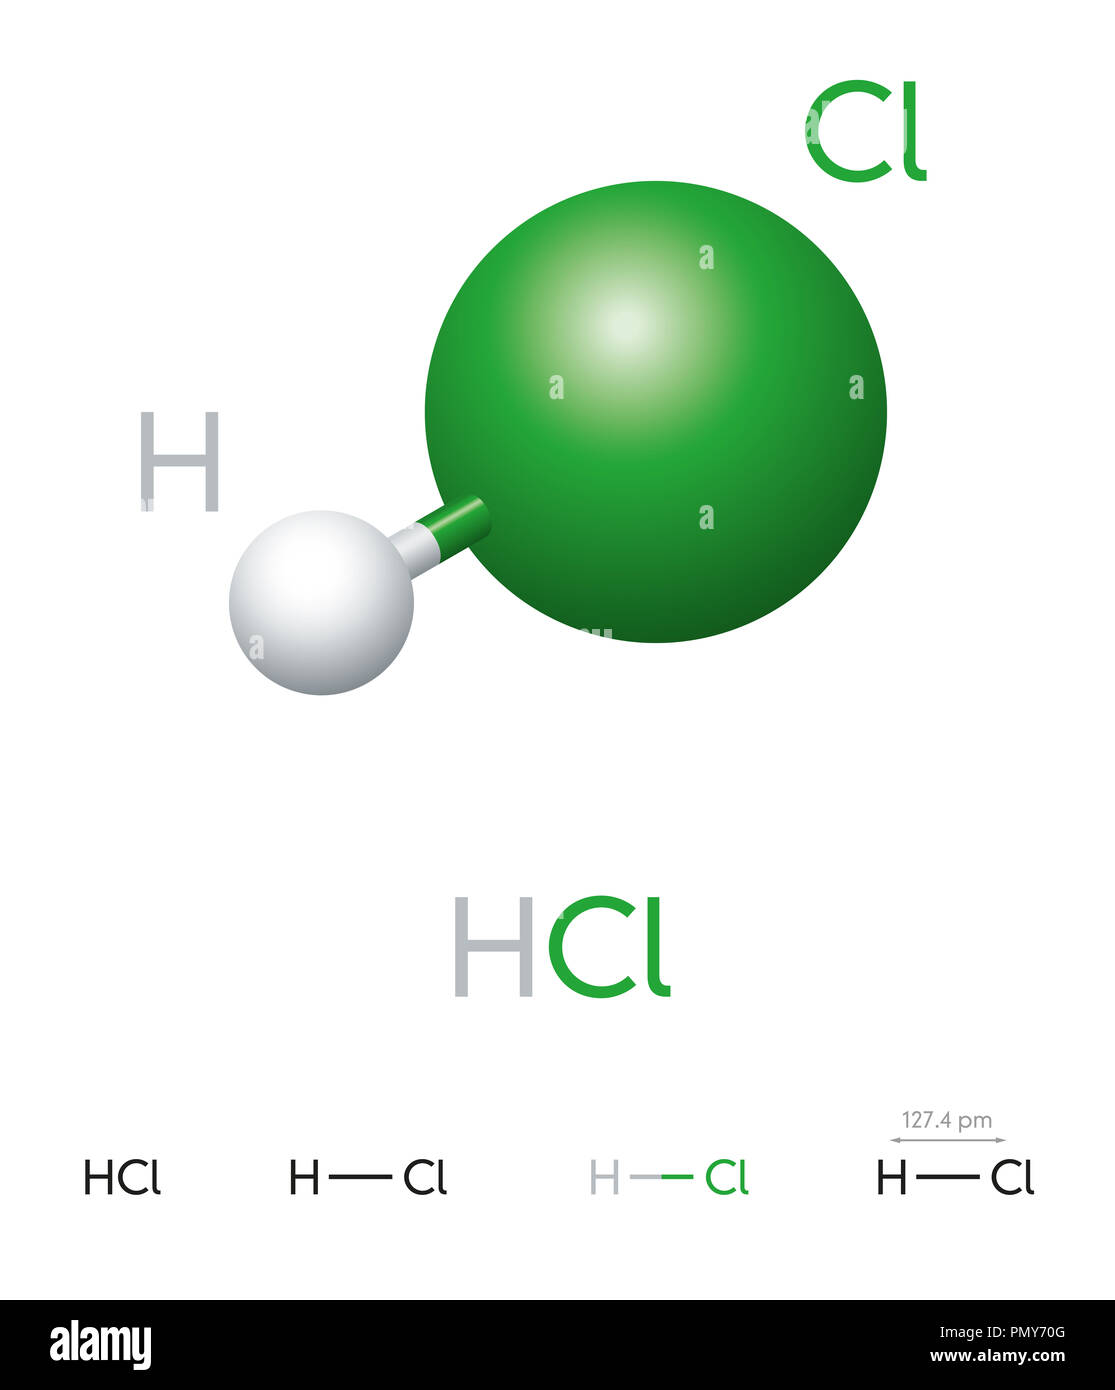 hight resolution of hydrogen chloride molecule model chemical formula ball and stick model geometric structure and structural formula hydrogen halide